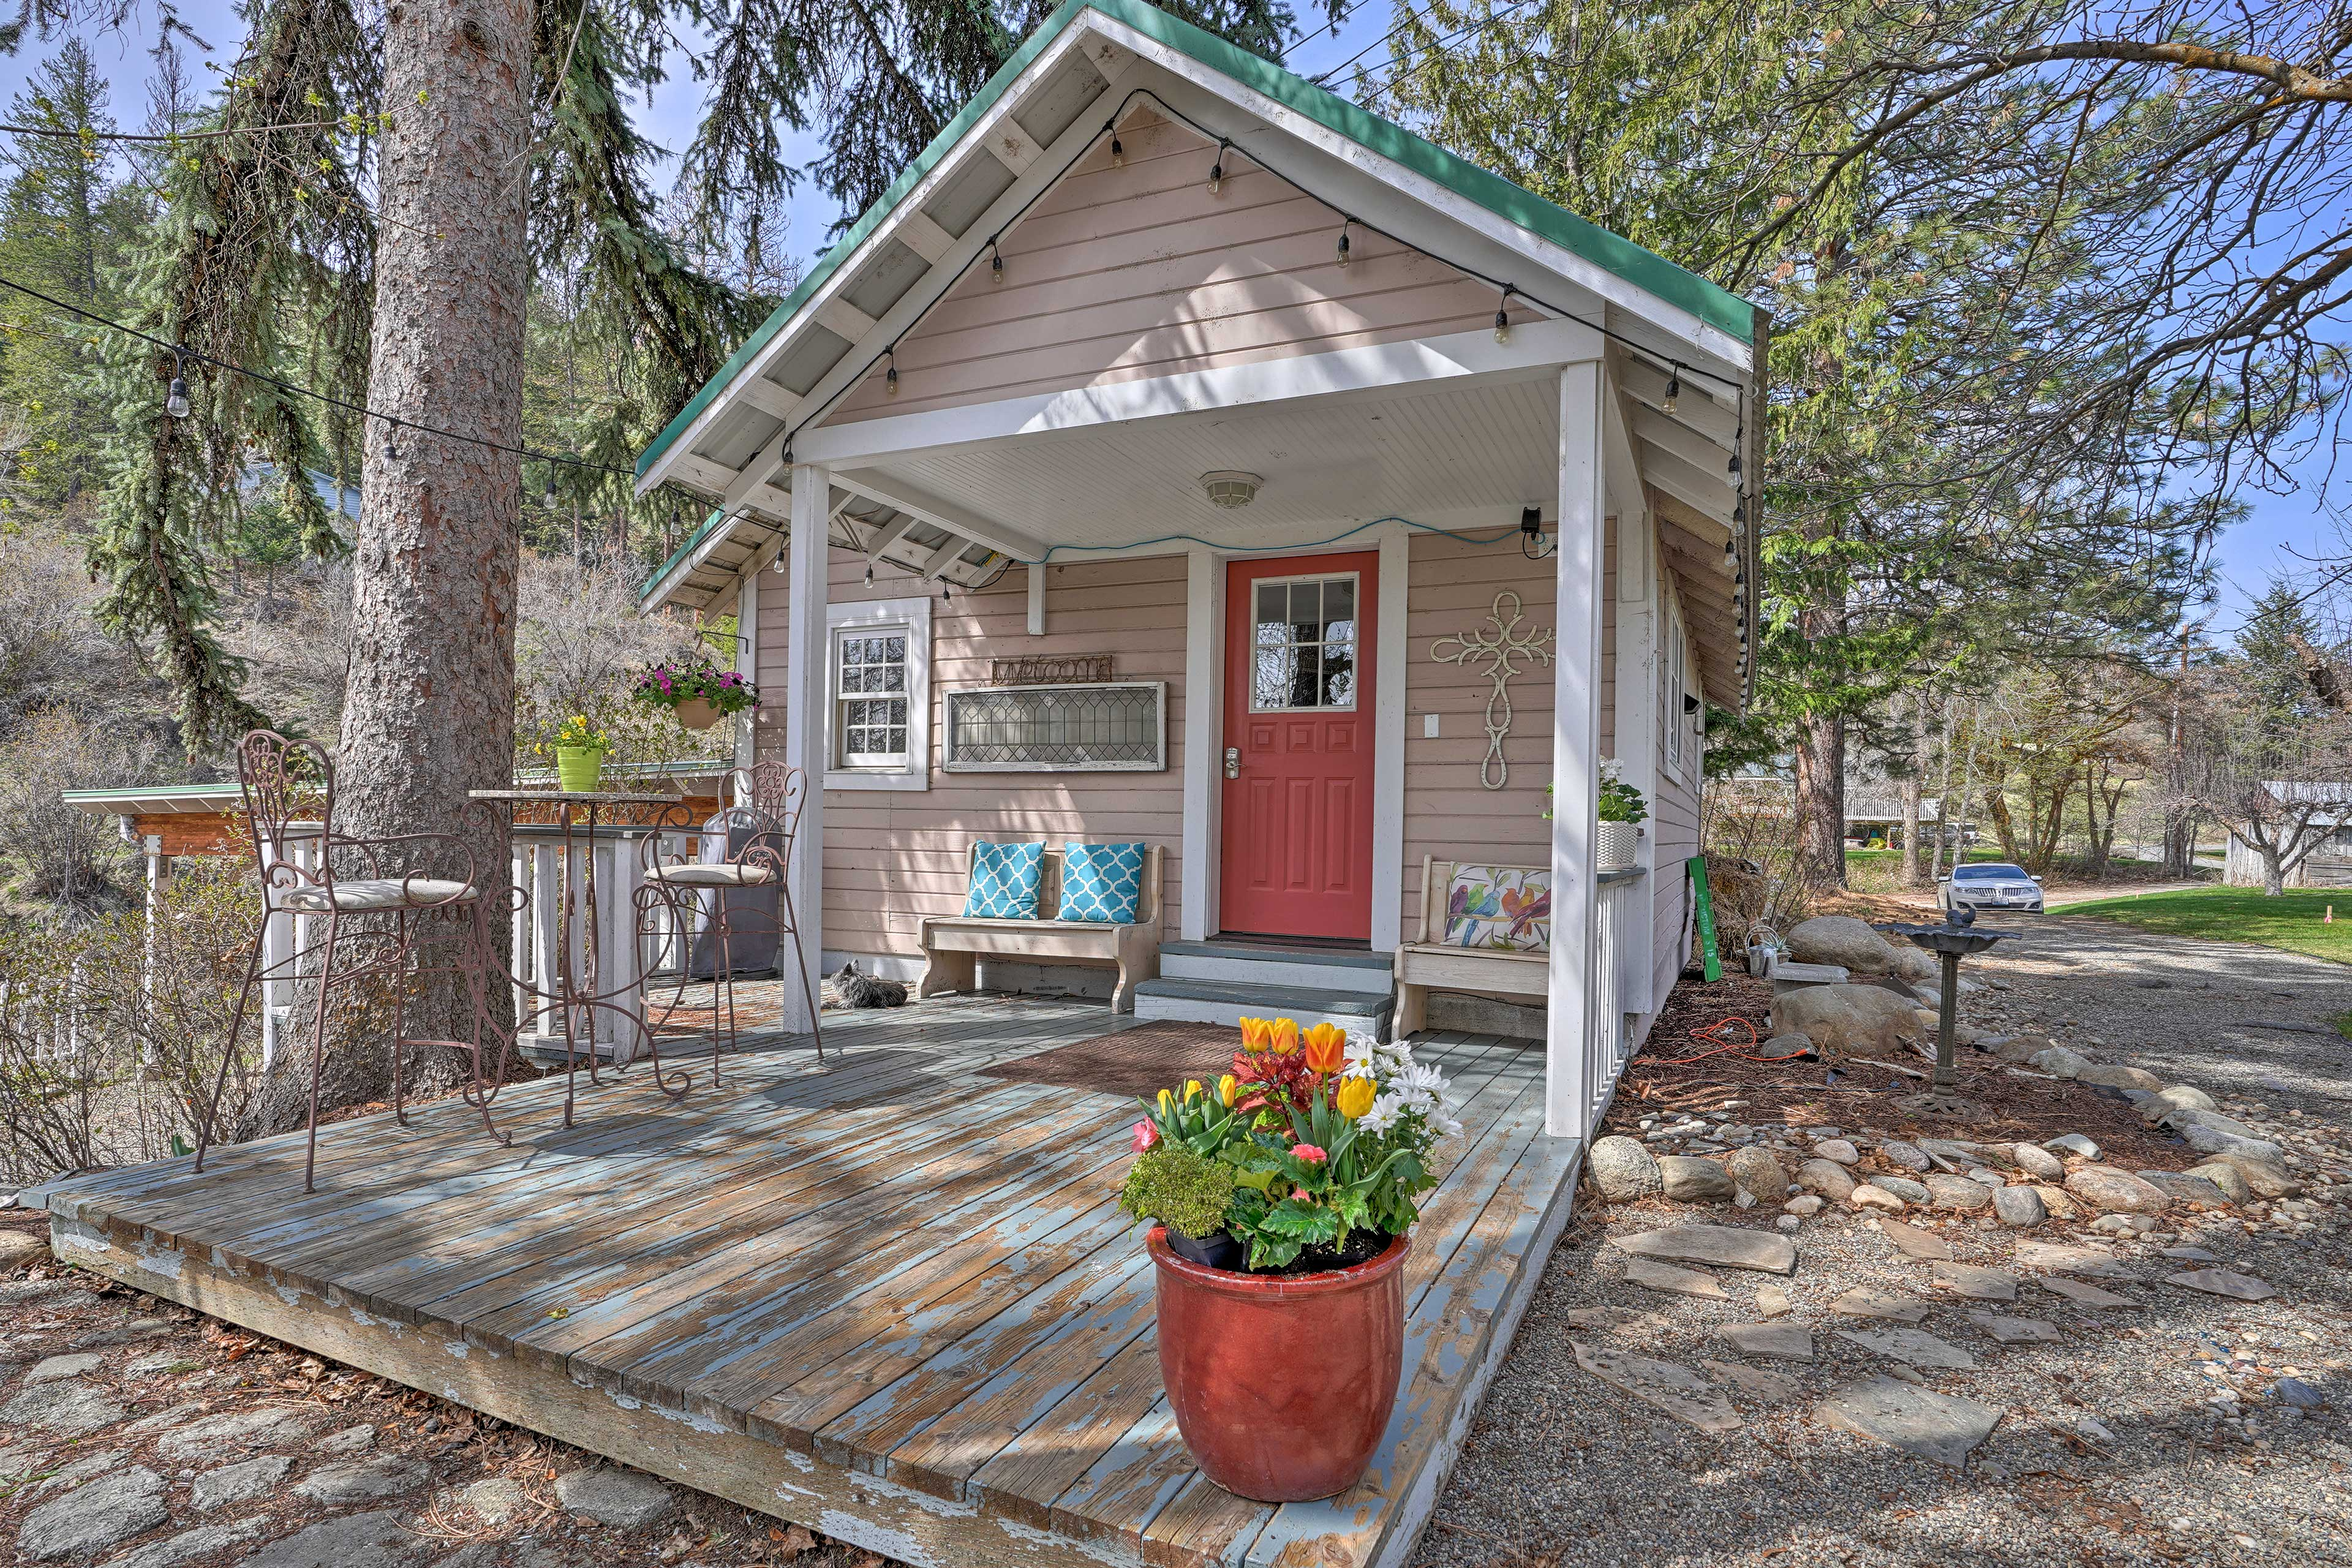 Your party of 4 will love this picturesque vacation rental home with a garden.